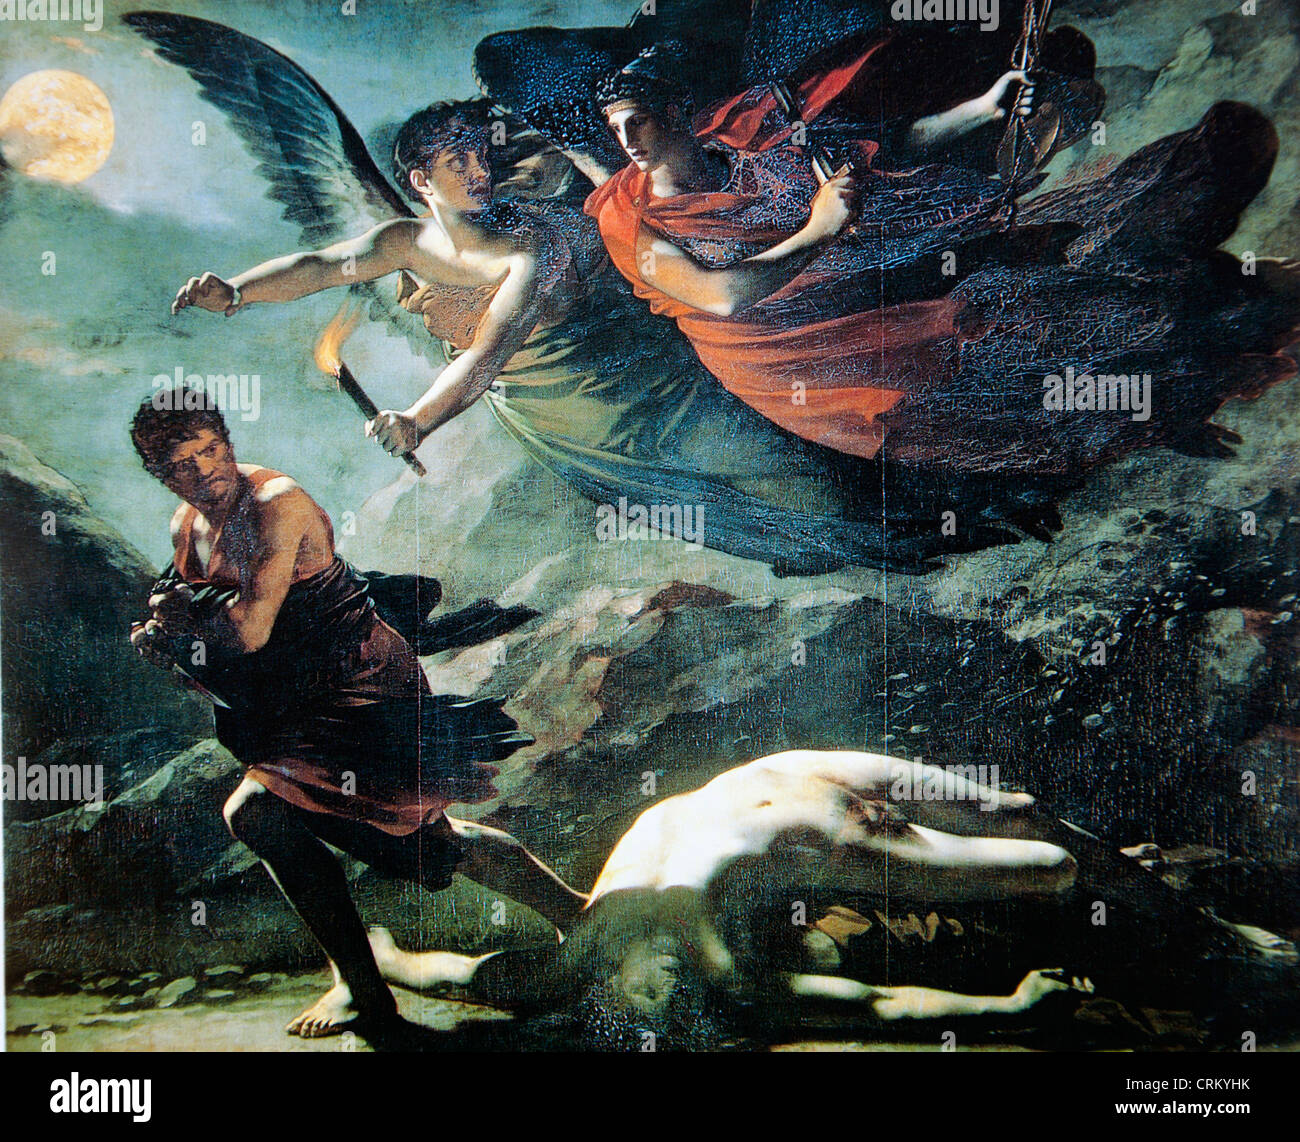 Justice and Divine Vengeance Pursuing Crime - Stock Image